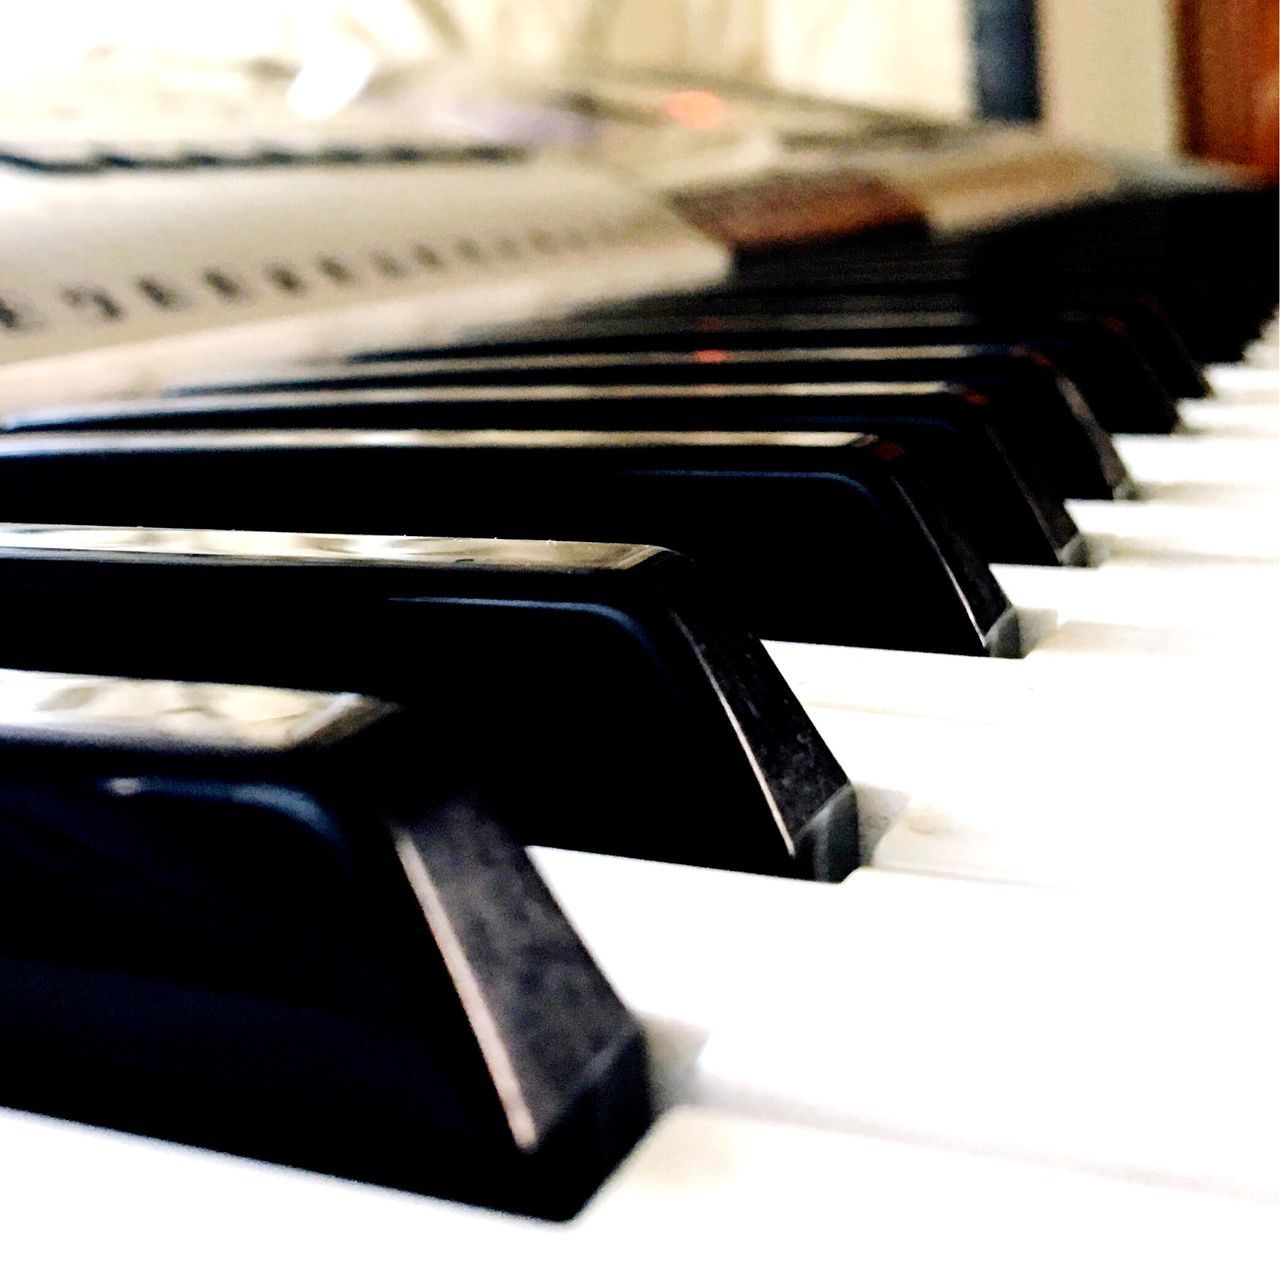 TakeoverMusic Piano Music Piano Key Musical Instrument Arts Culture And Entertainment Indoors  Close-up Black Color No People Musical Equipment Classical Music Day Highcontrast